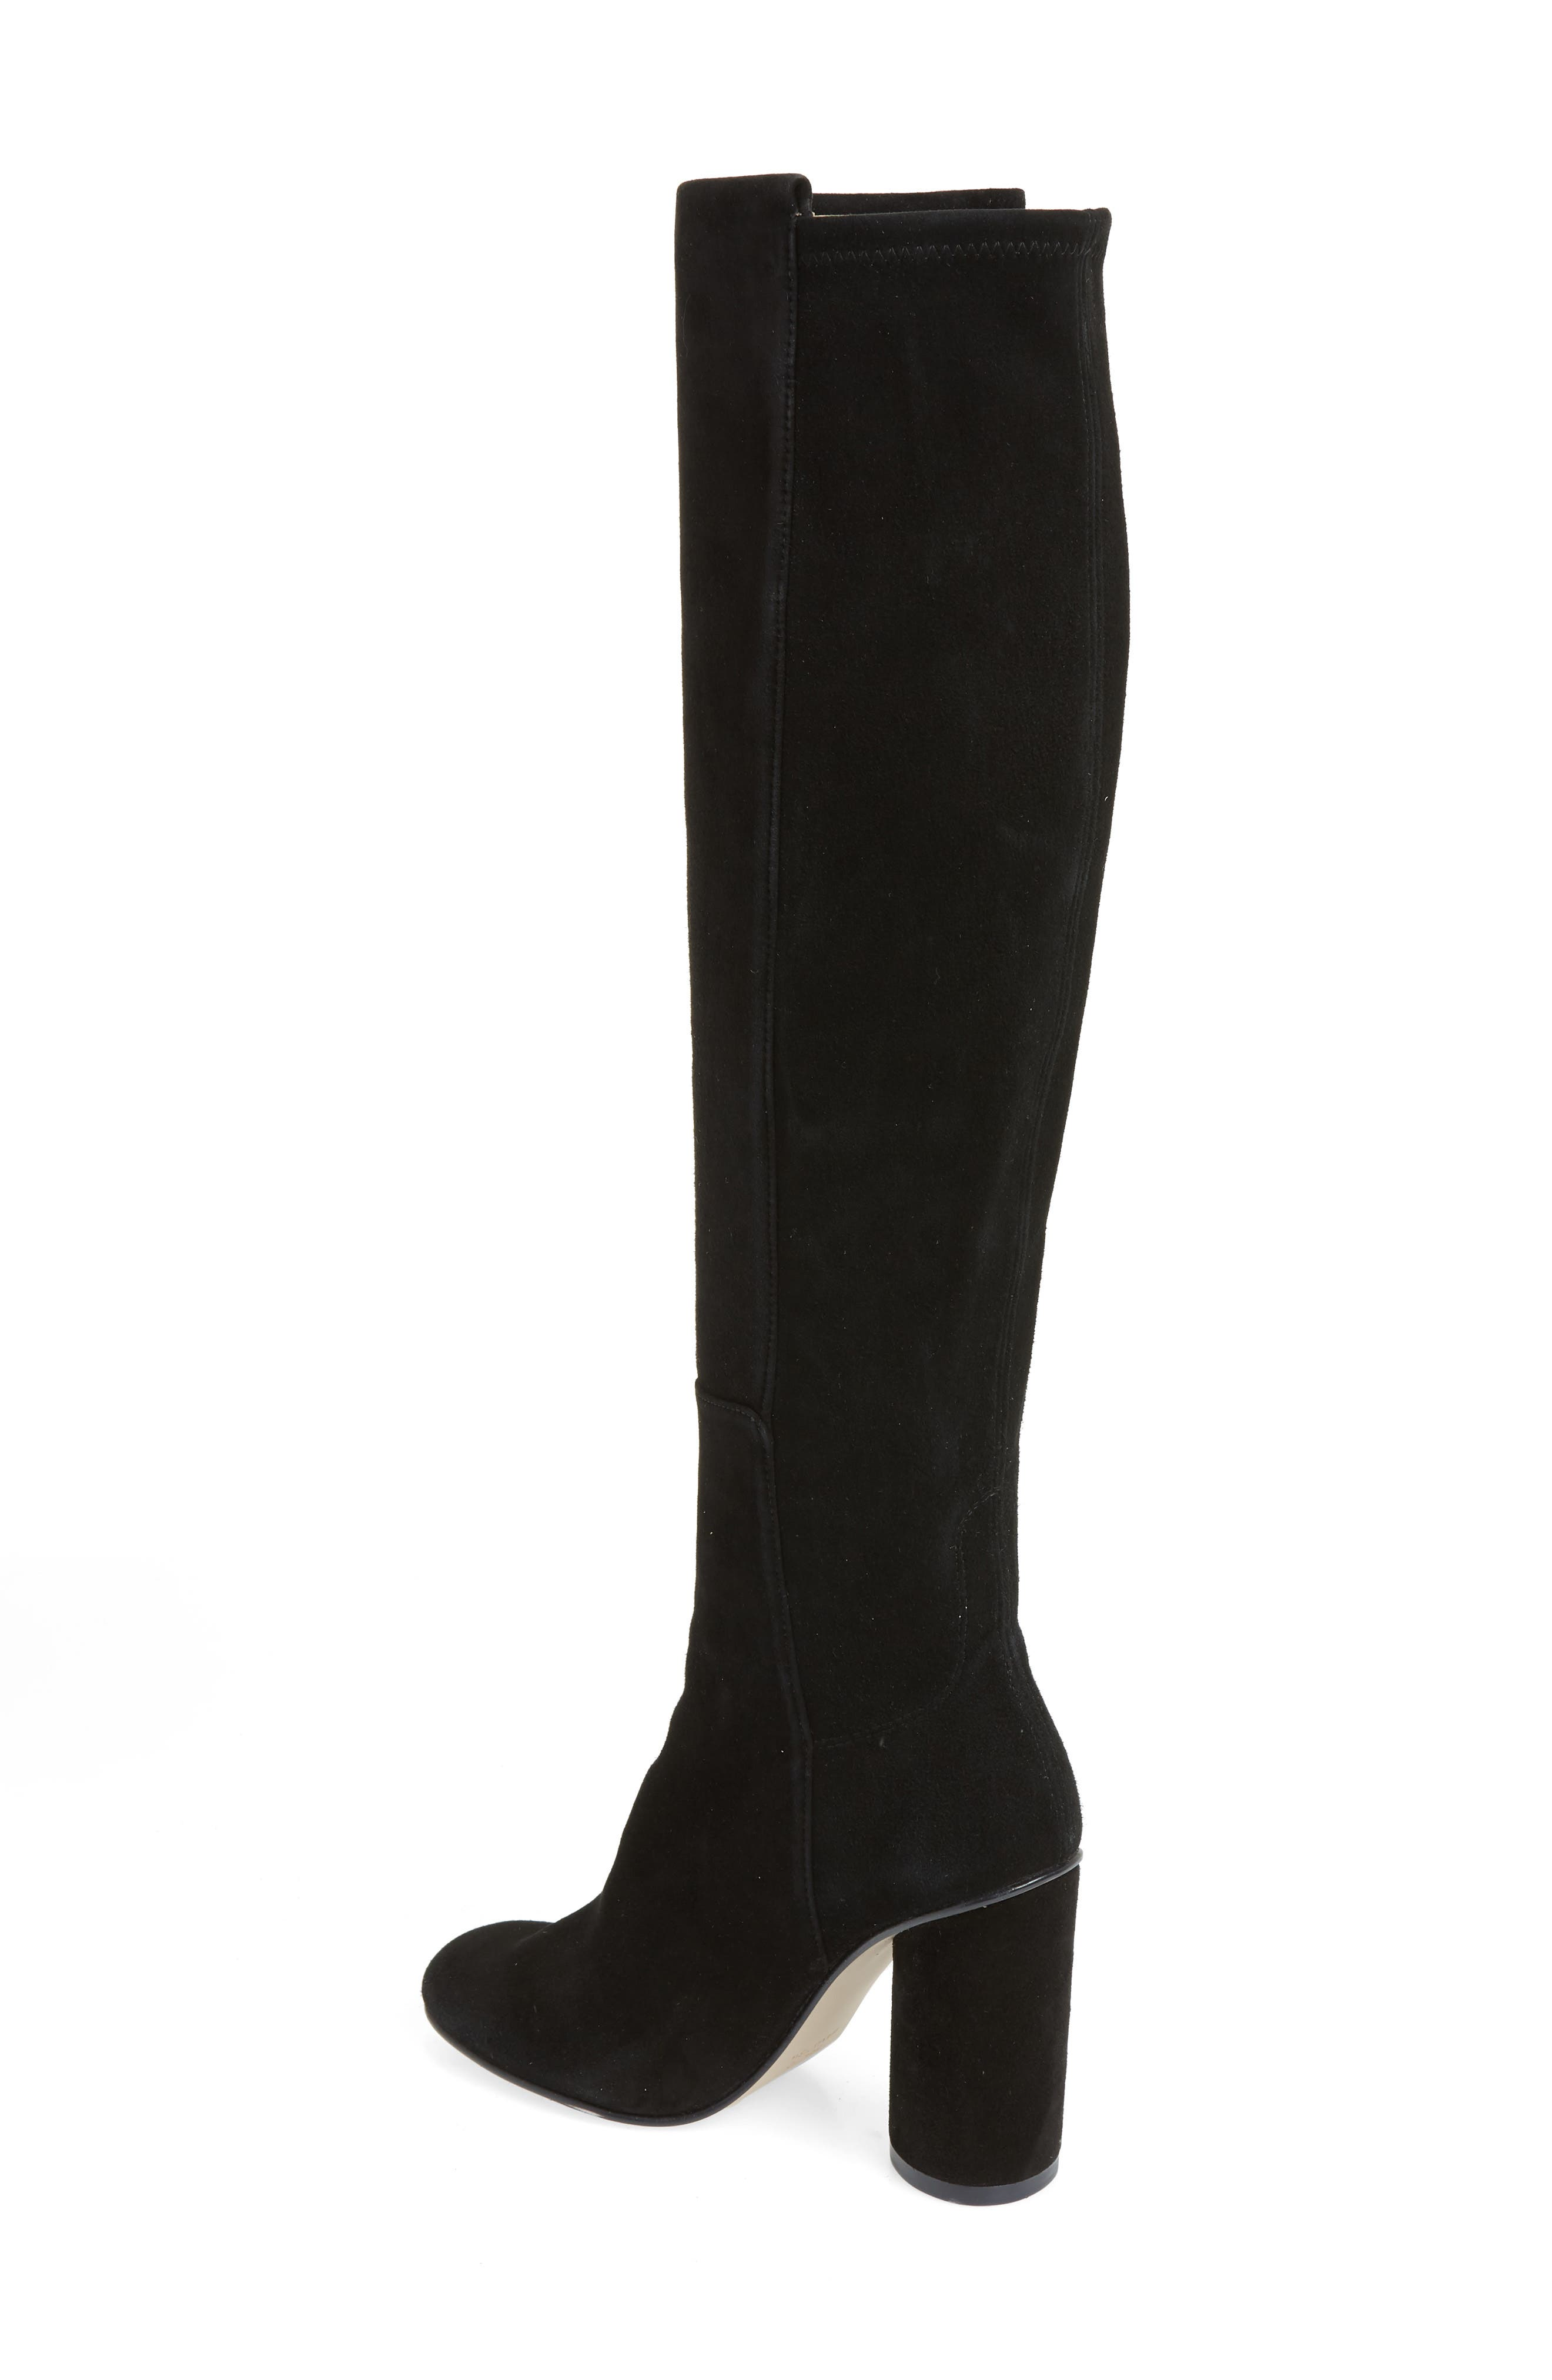 Eloise Over the Knee Boot,                             Alternate thumbnail 2, color,                             BLACK SUEDE